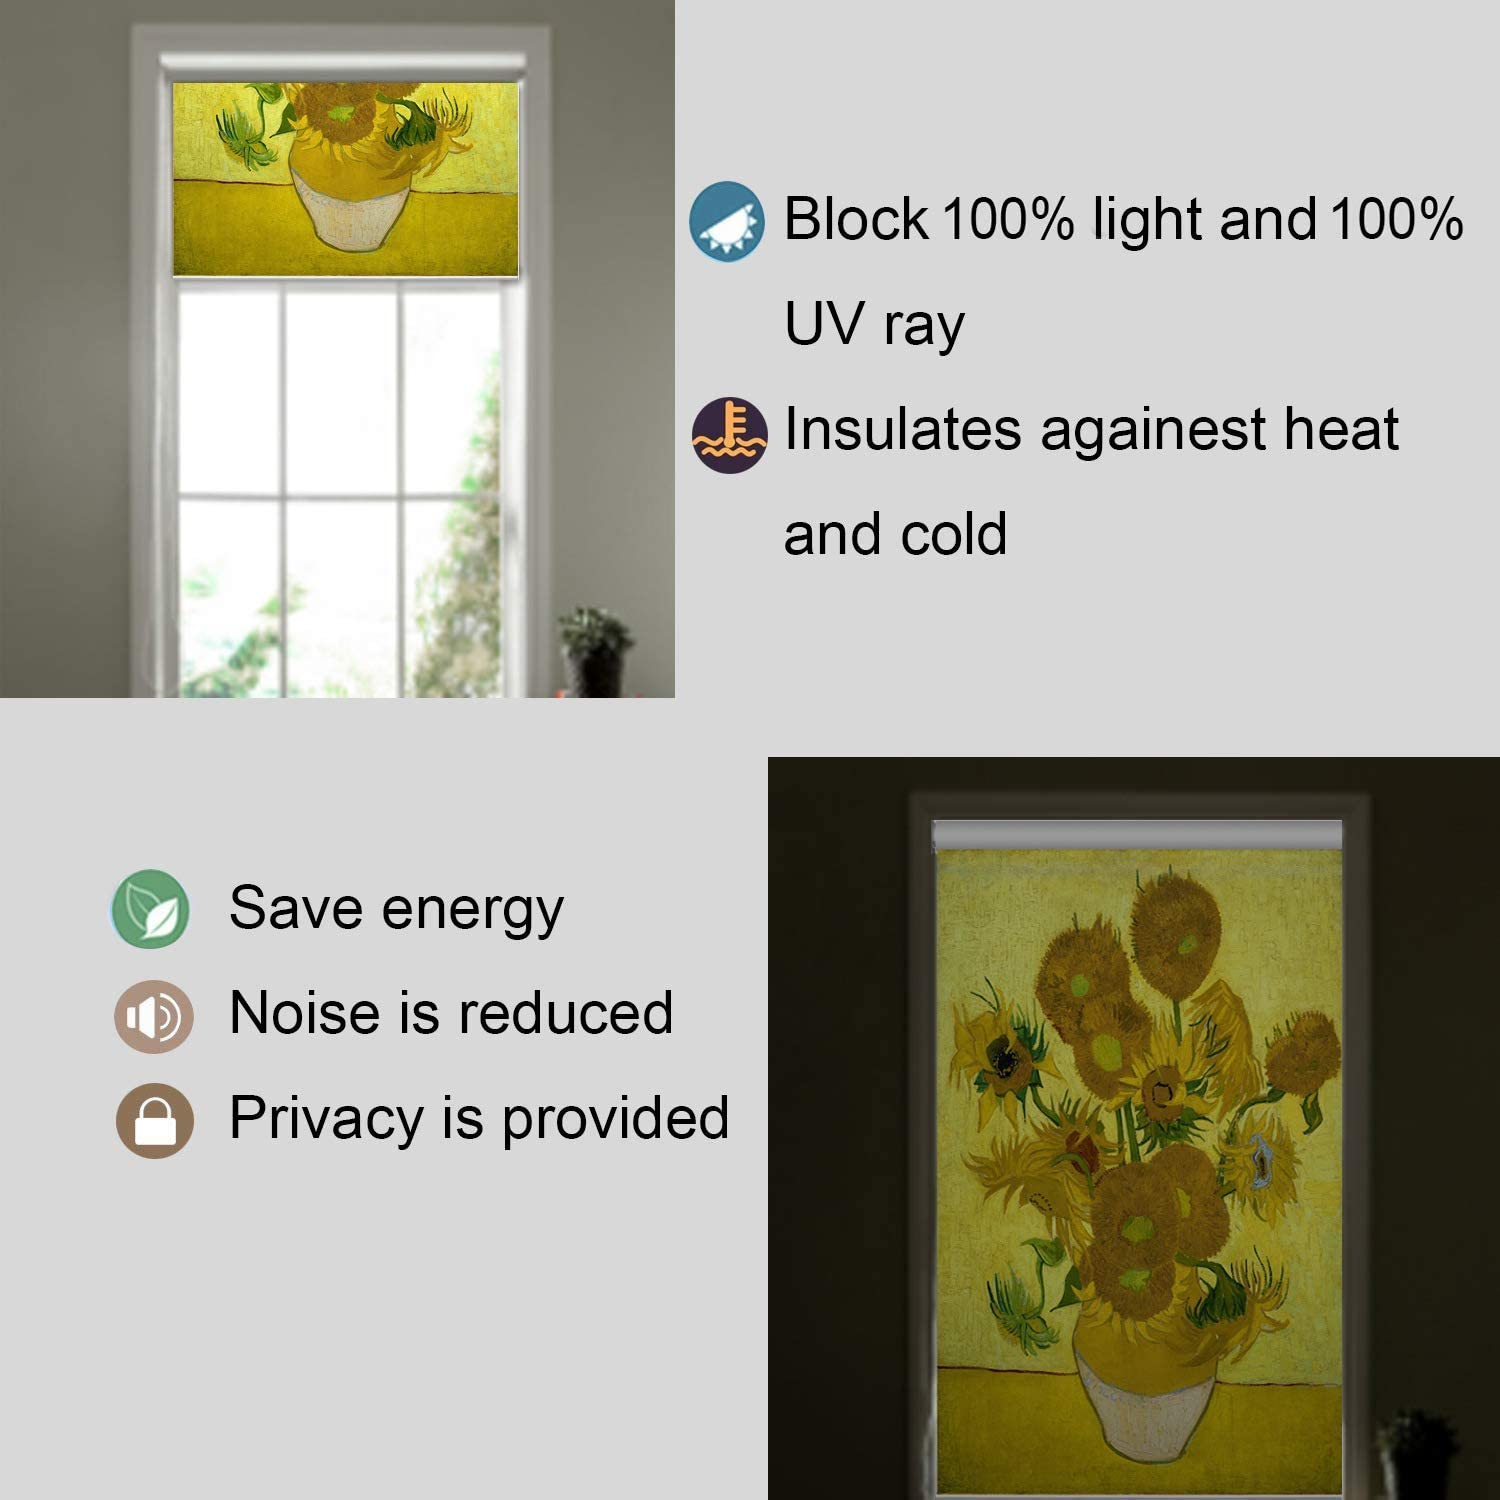 Blackout Window Shades SEA-5 Premium UV Protection Water Proof Custom Roller Blinds Printed Picture Window Roller Shade,30 W x 36 L